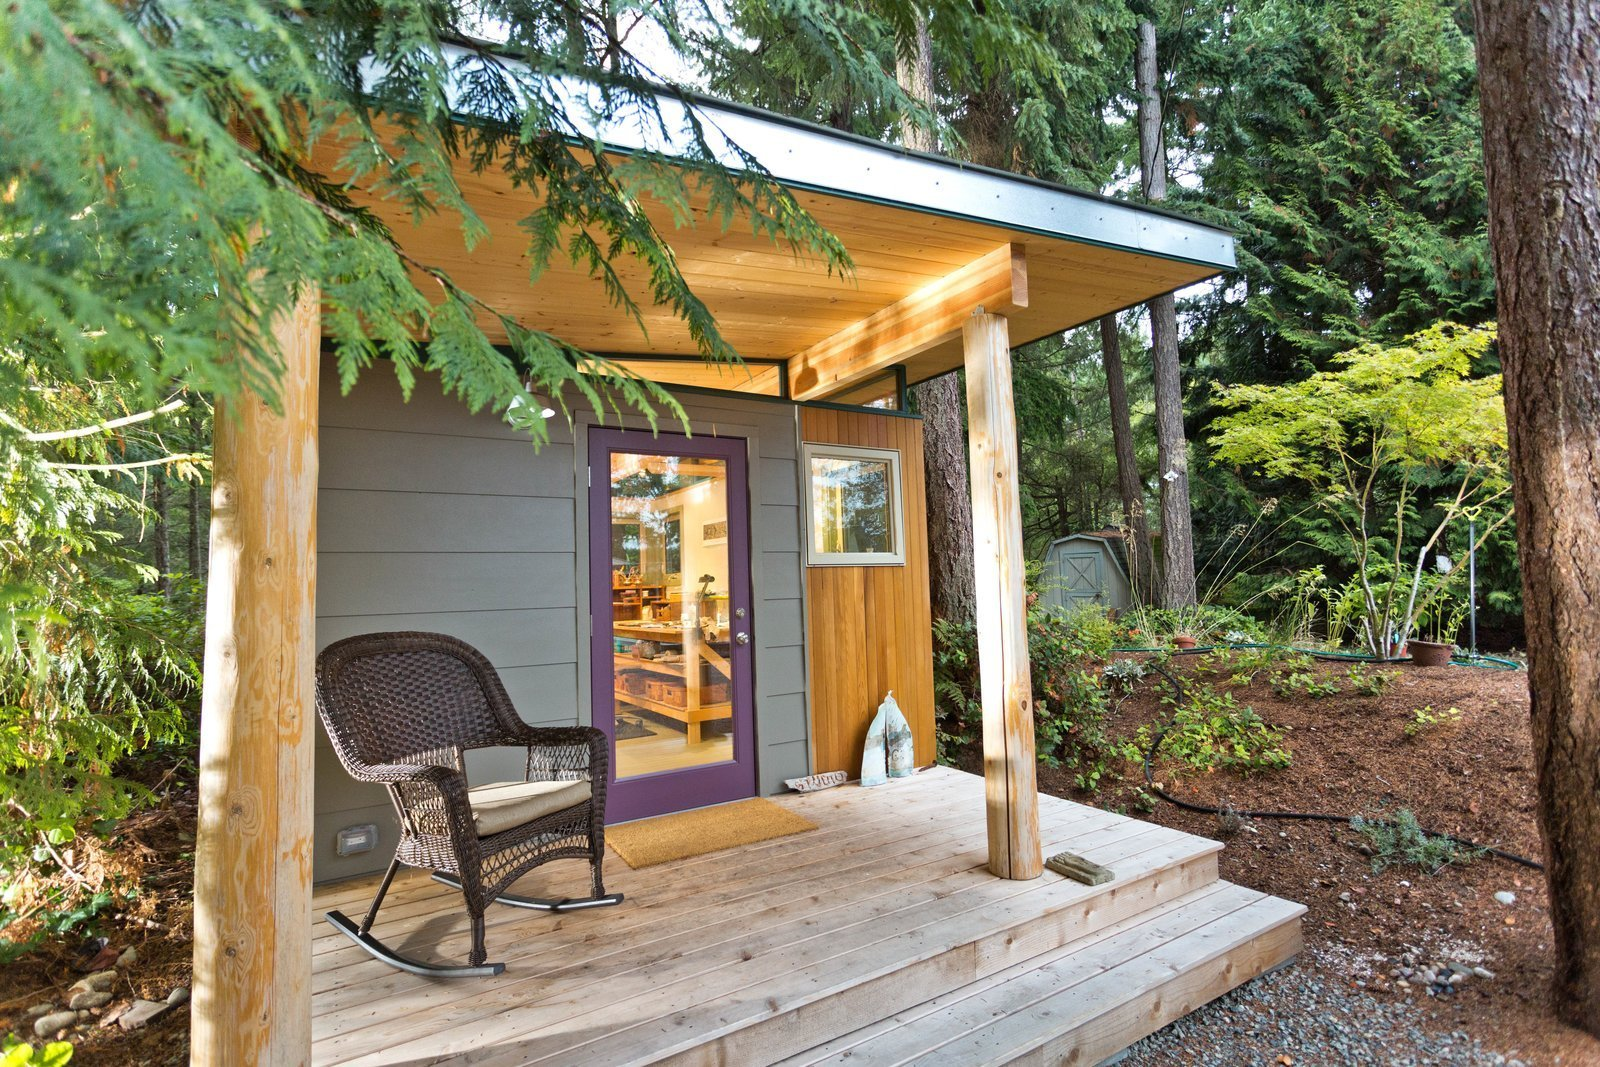 Shed & Studio, Living Space Room Type, and Living Room Room Type This prefabricated studio shed by Modern-Shed Inc. in Vahon Island, Washington, serves as a peaceful creative workspace for a professional artist.  Photo 5 of 9 in 8 Tiny Sheds and Studios Used as Home Offices or Creative Retreats